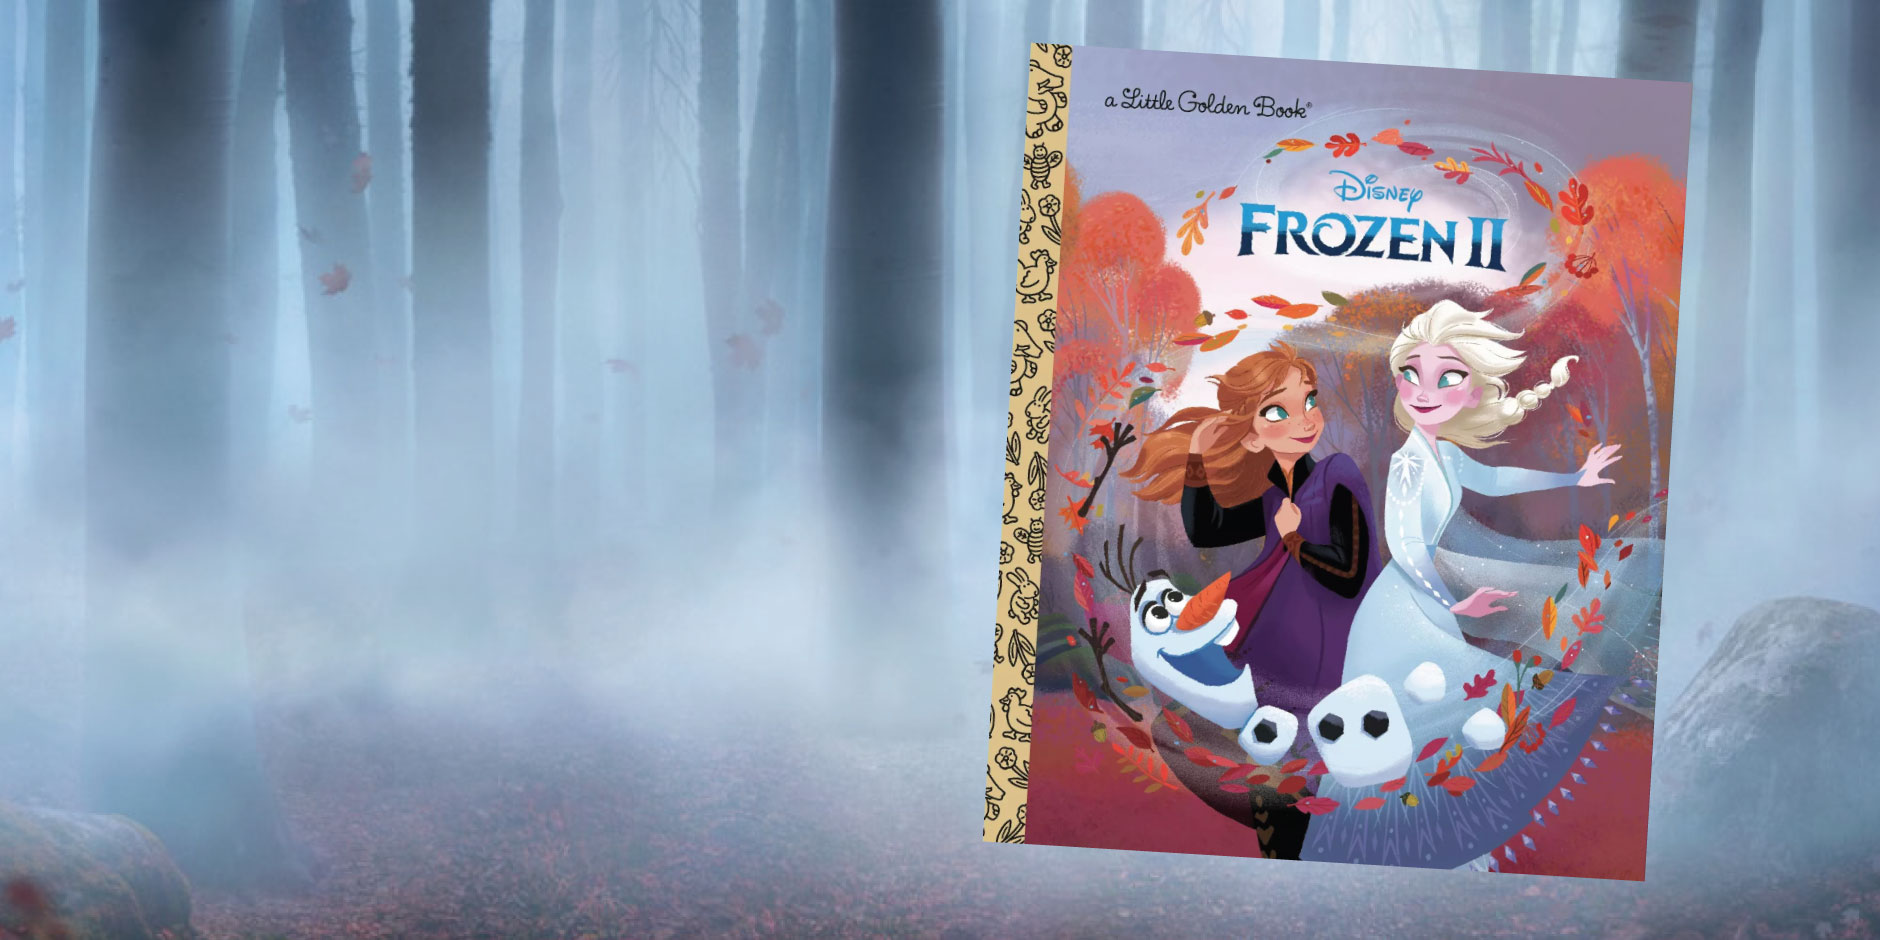 A Disney Frozen 2 storybook with Elsa and Anna on the cover, in front of a wooded background